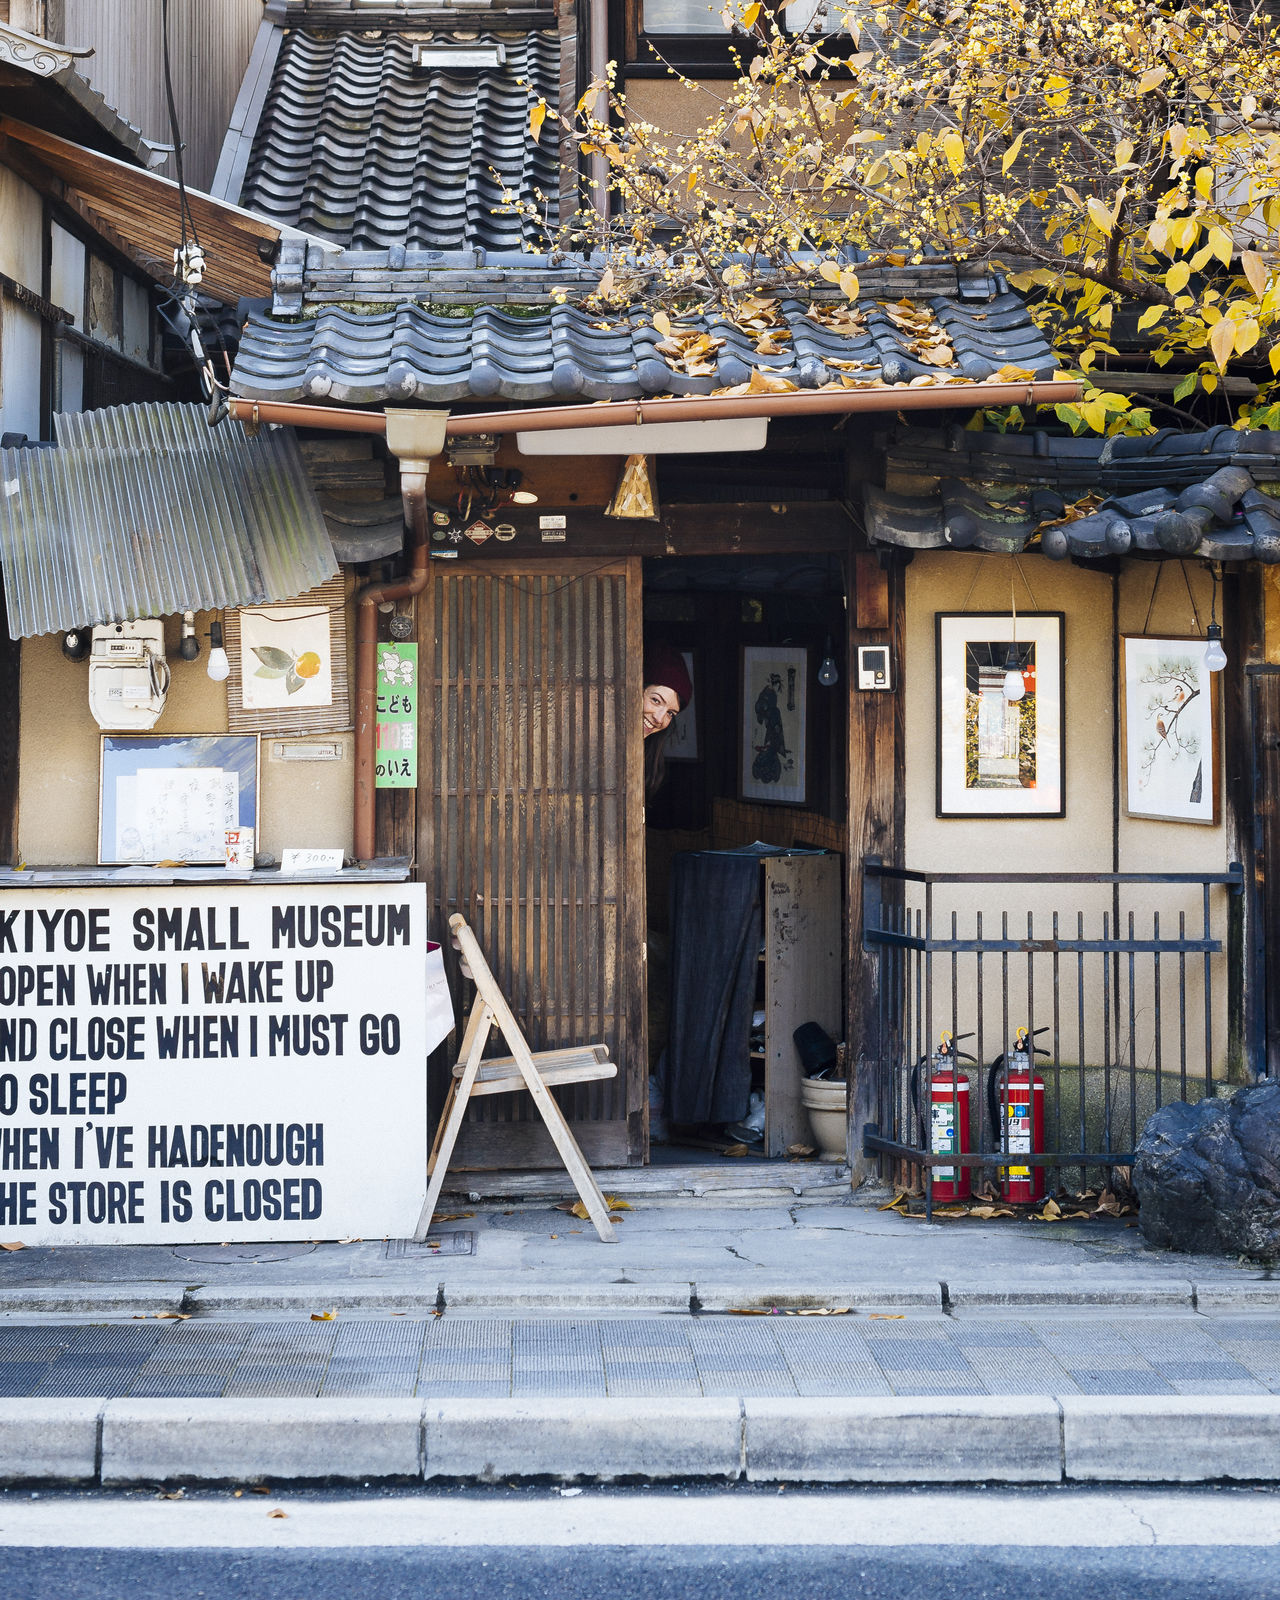 Backstreets of Kyoto, Japan Architecture Autumn Autumn Colors Autumn Leaves Building Exterior Built Structure City Curb Day Doorway Historic Kyoto No People Outdoors Roof Tile Shop Sign Travel Travel Destinations Travel Photography